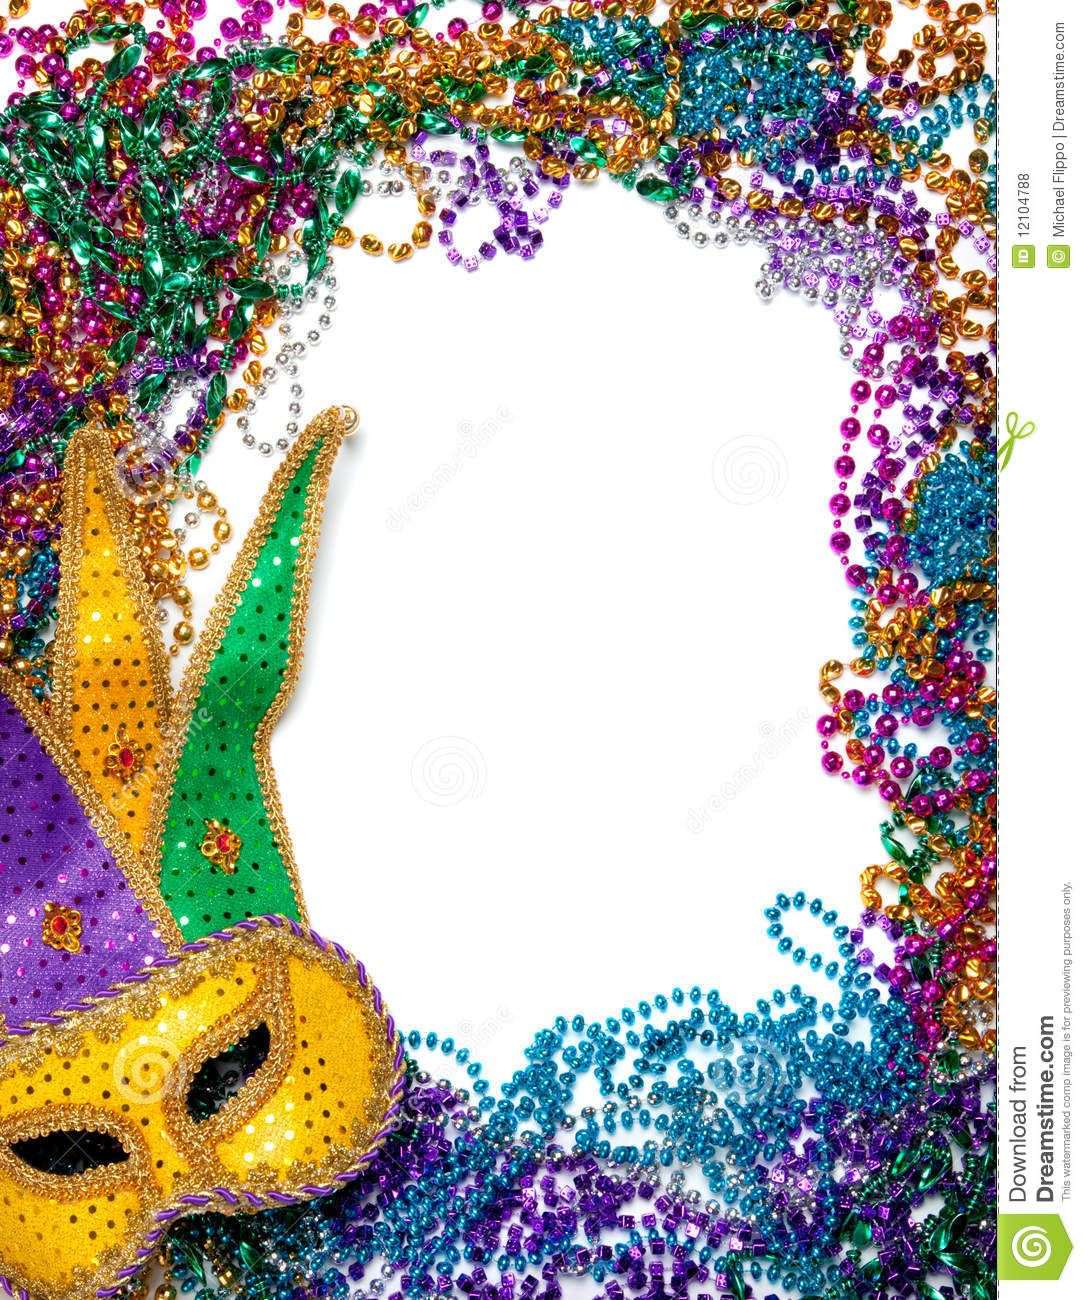 Mardi Gras Border Images Free Stock Photos Border Made Of